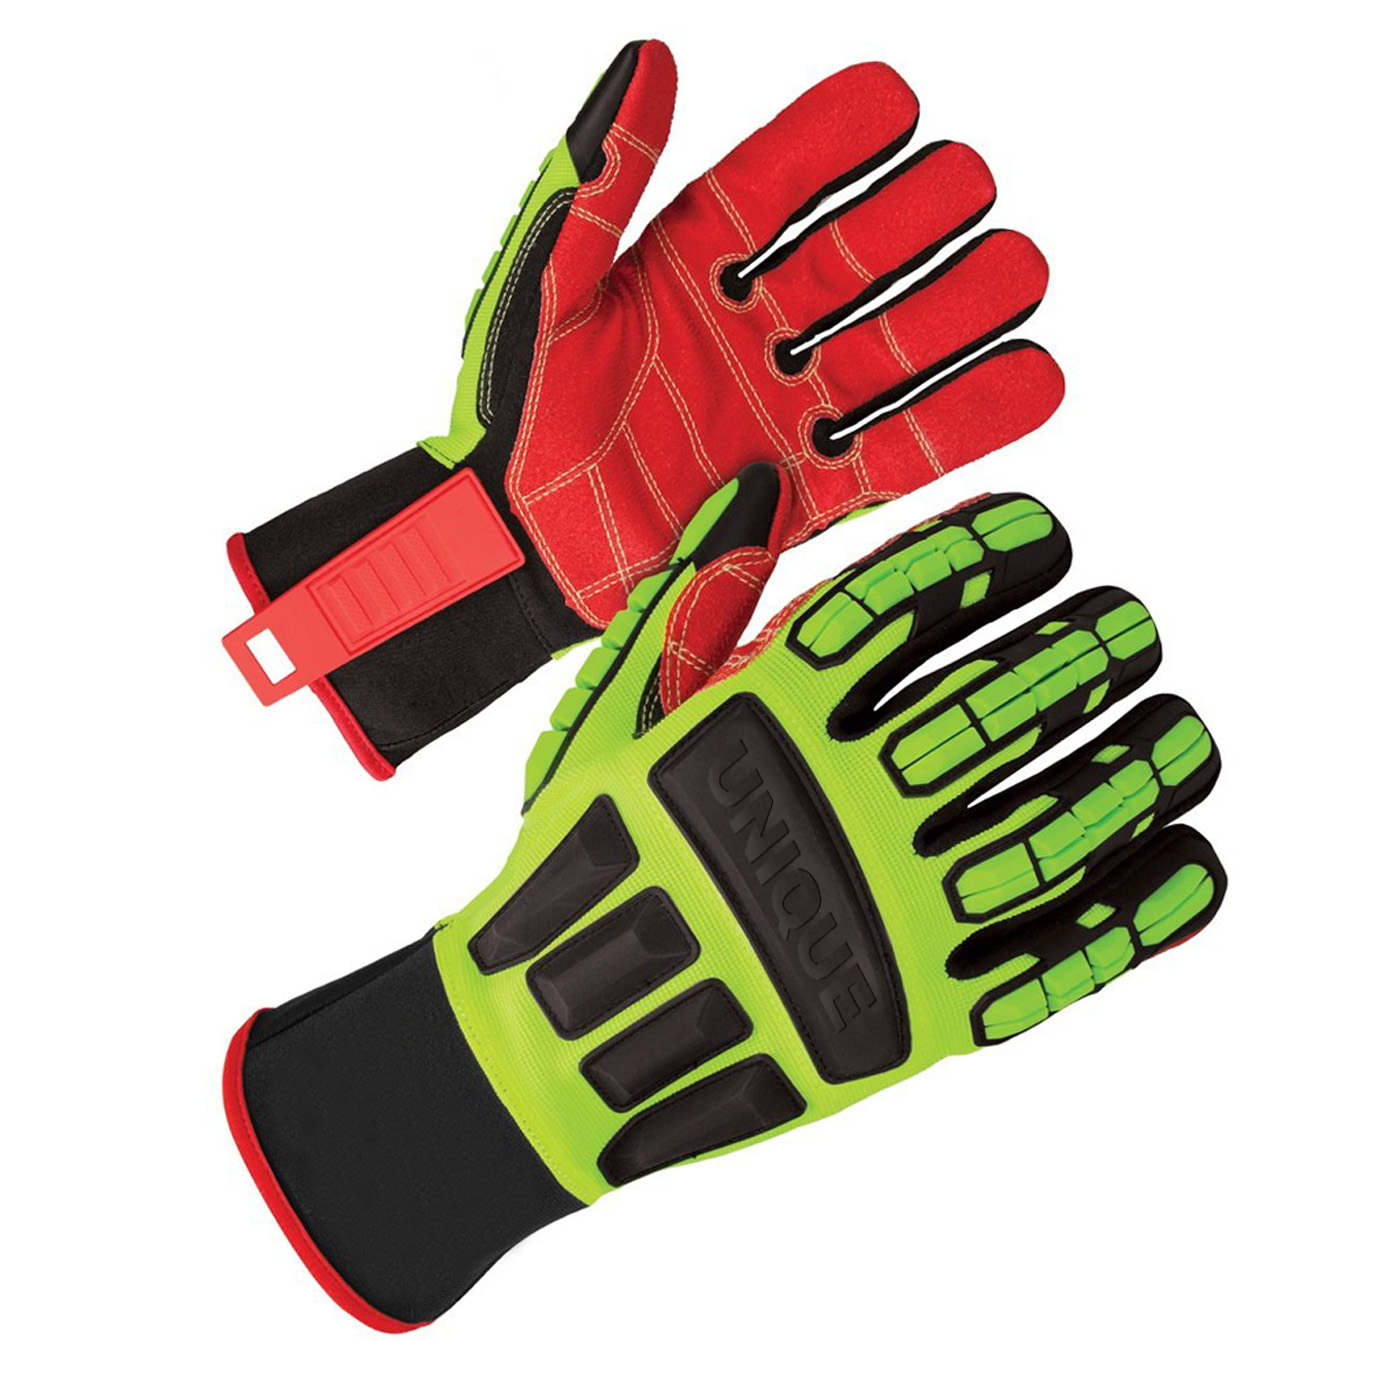 Heavy duty TPR Impact gloves with PVC